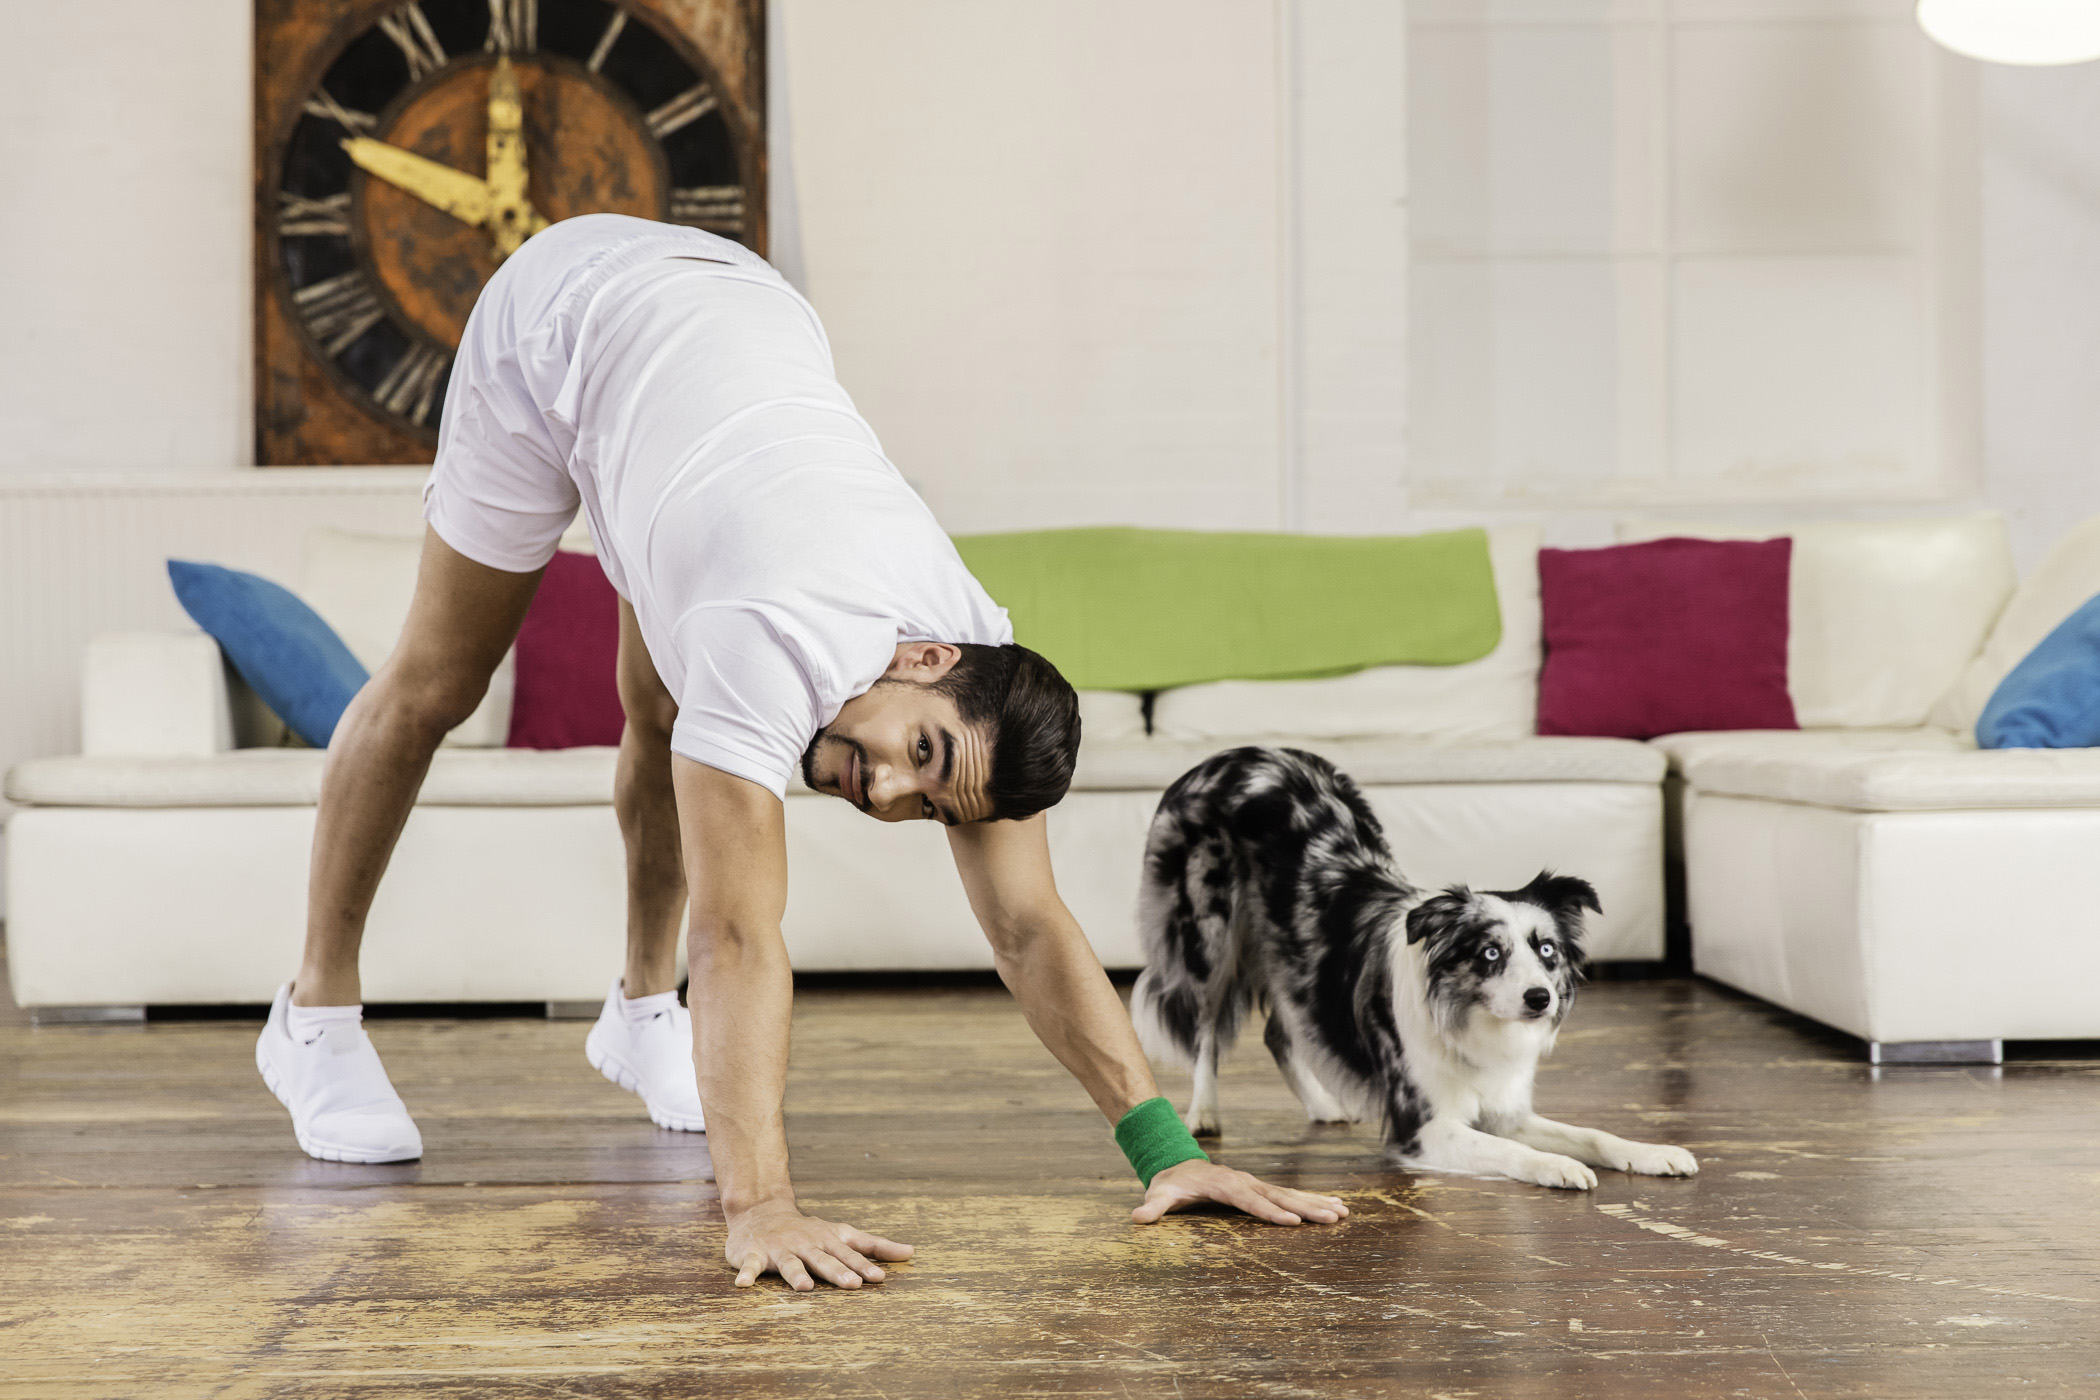 Downward dog: Olympian Louis Smith limbers up with Gift the dog as part of the world's first celebrity workout video for man and dog. 'Petsercise with Louis Smith' was created by More Than insurance and Wagglepets and can be viewed for free at www.morethan.com